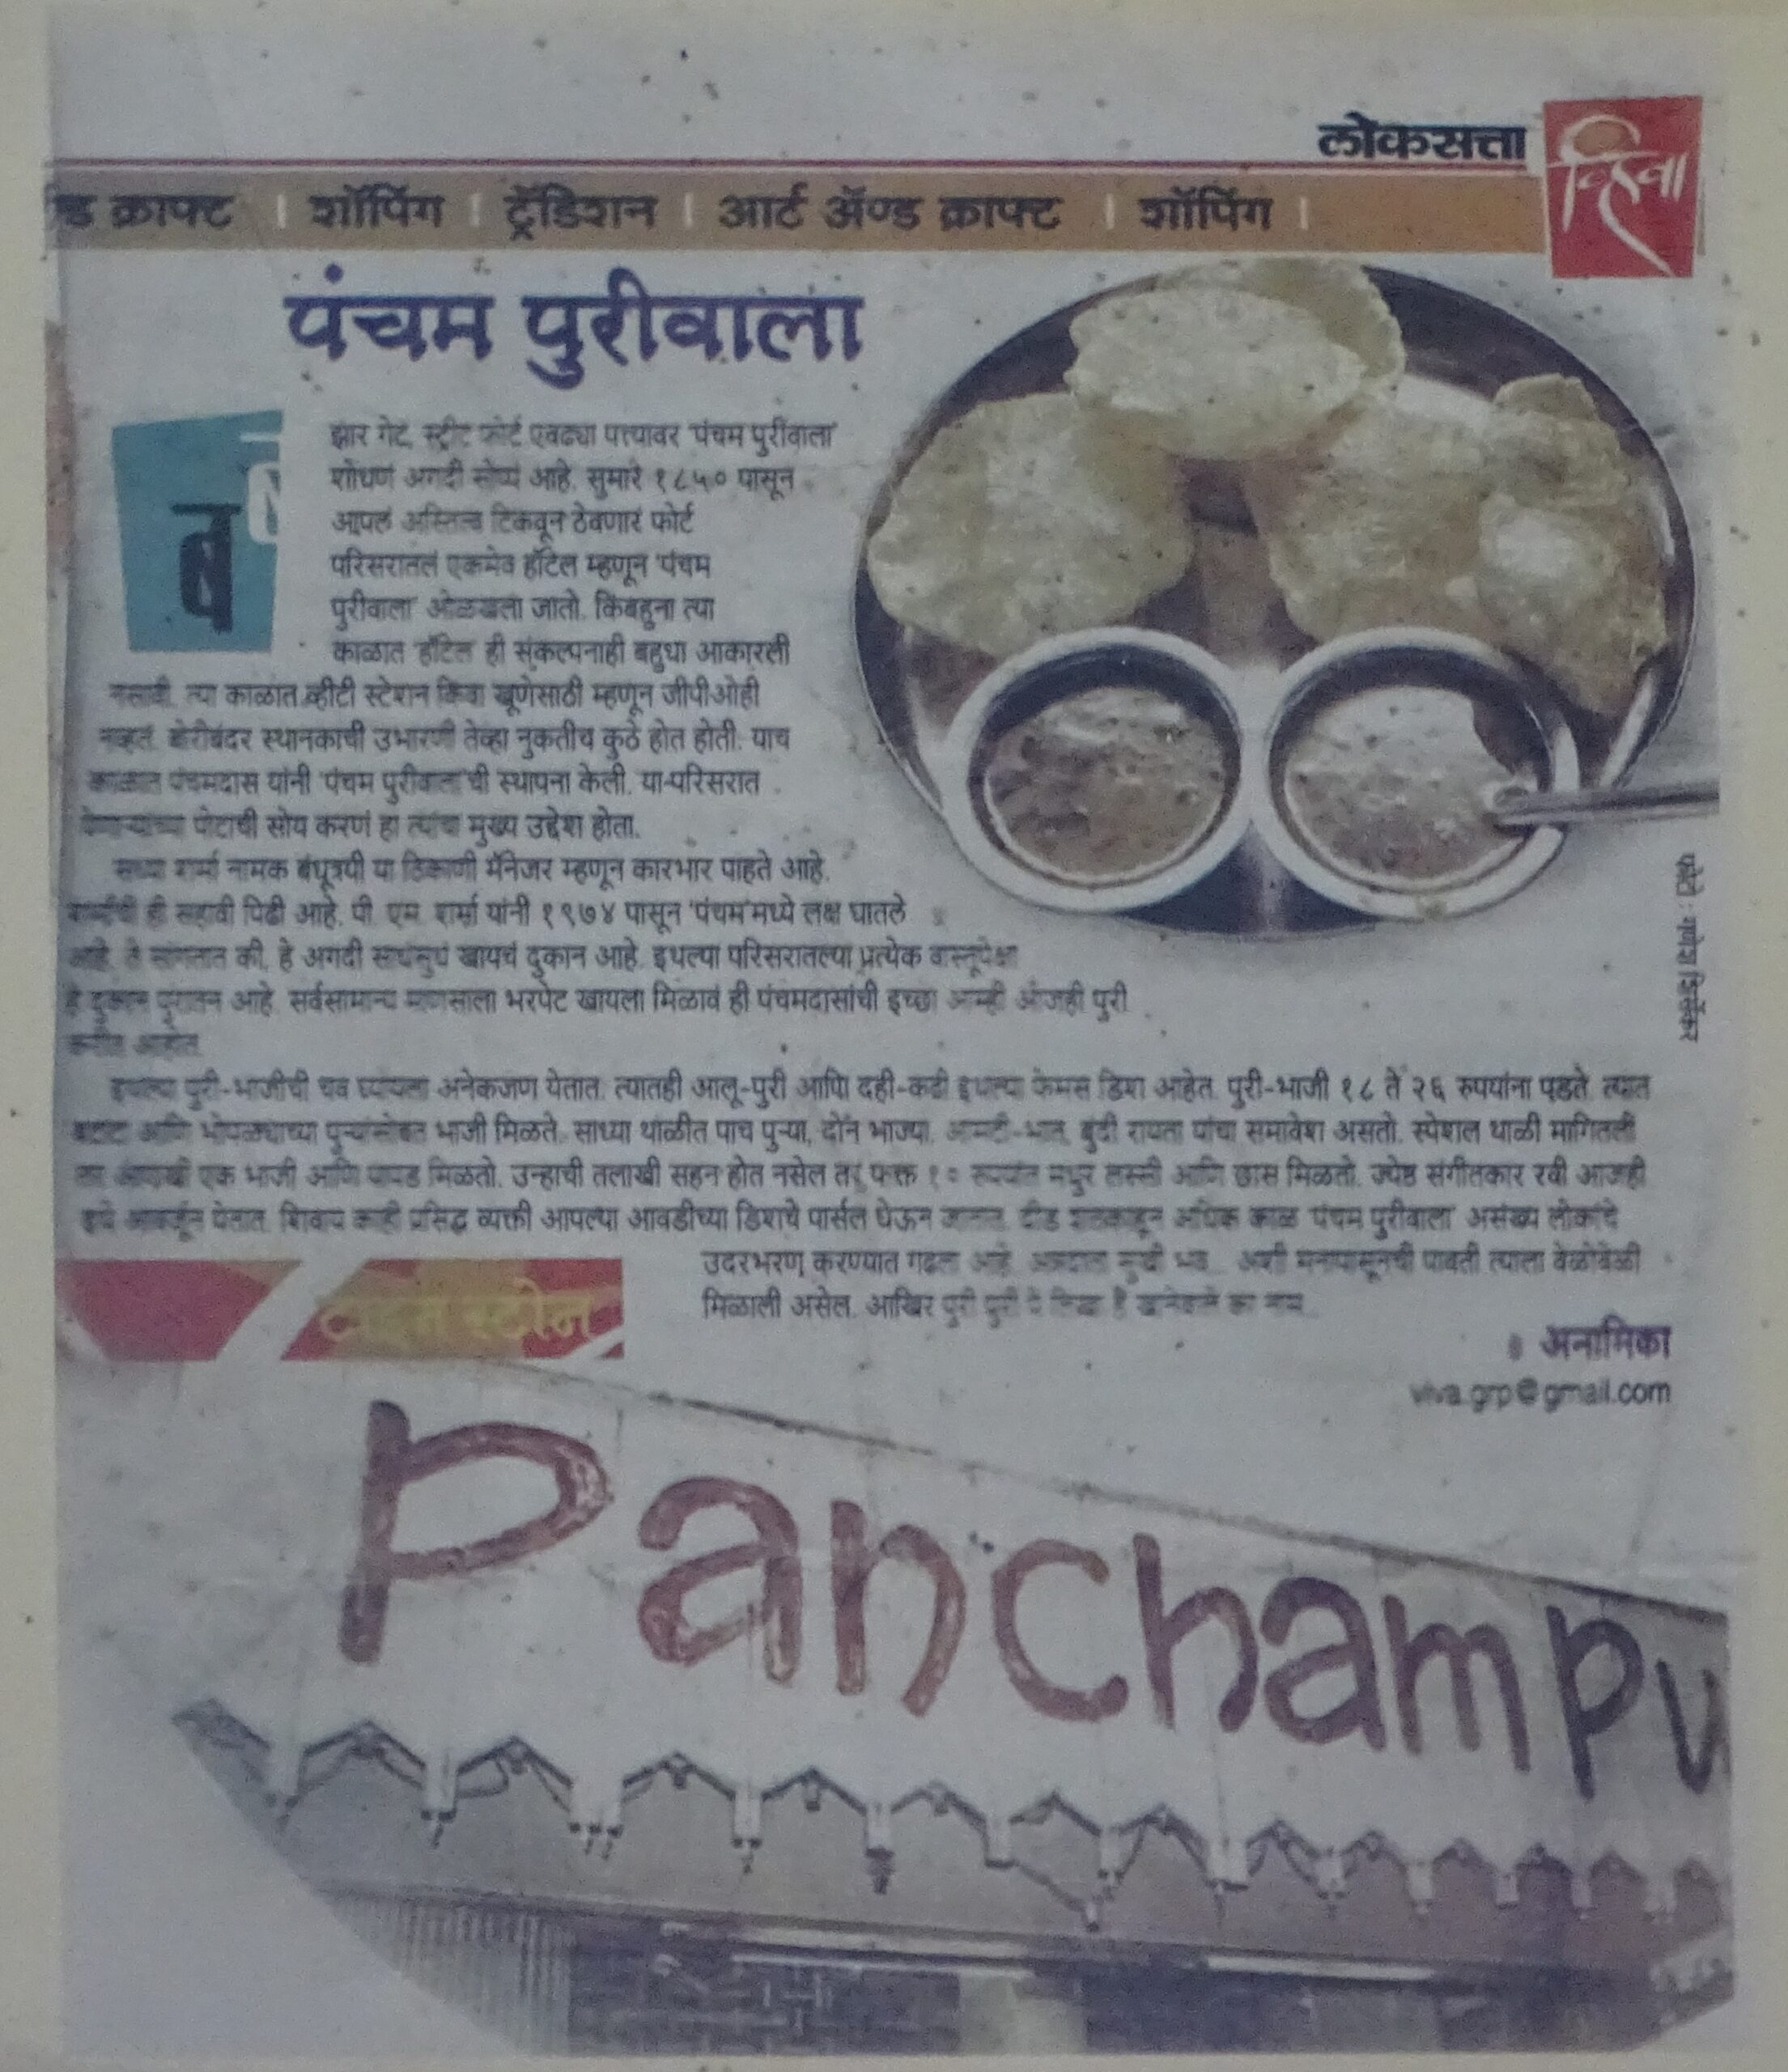 Article (in Marathi Language) on Pancham Puriwala by Loksatta